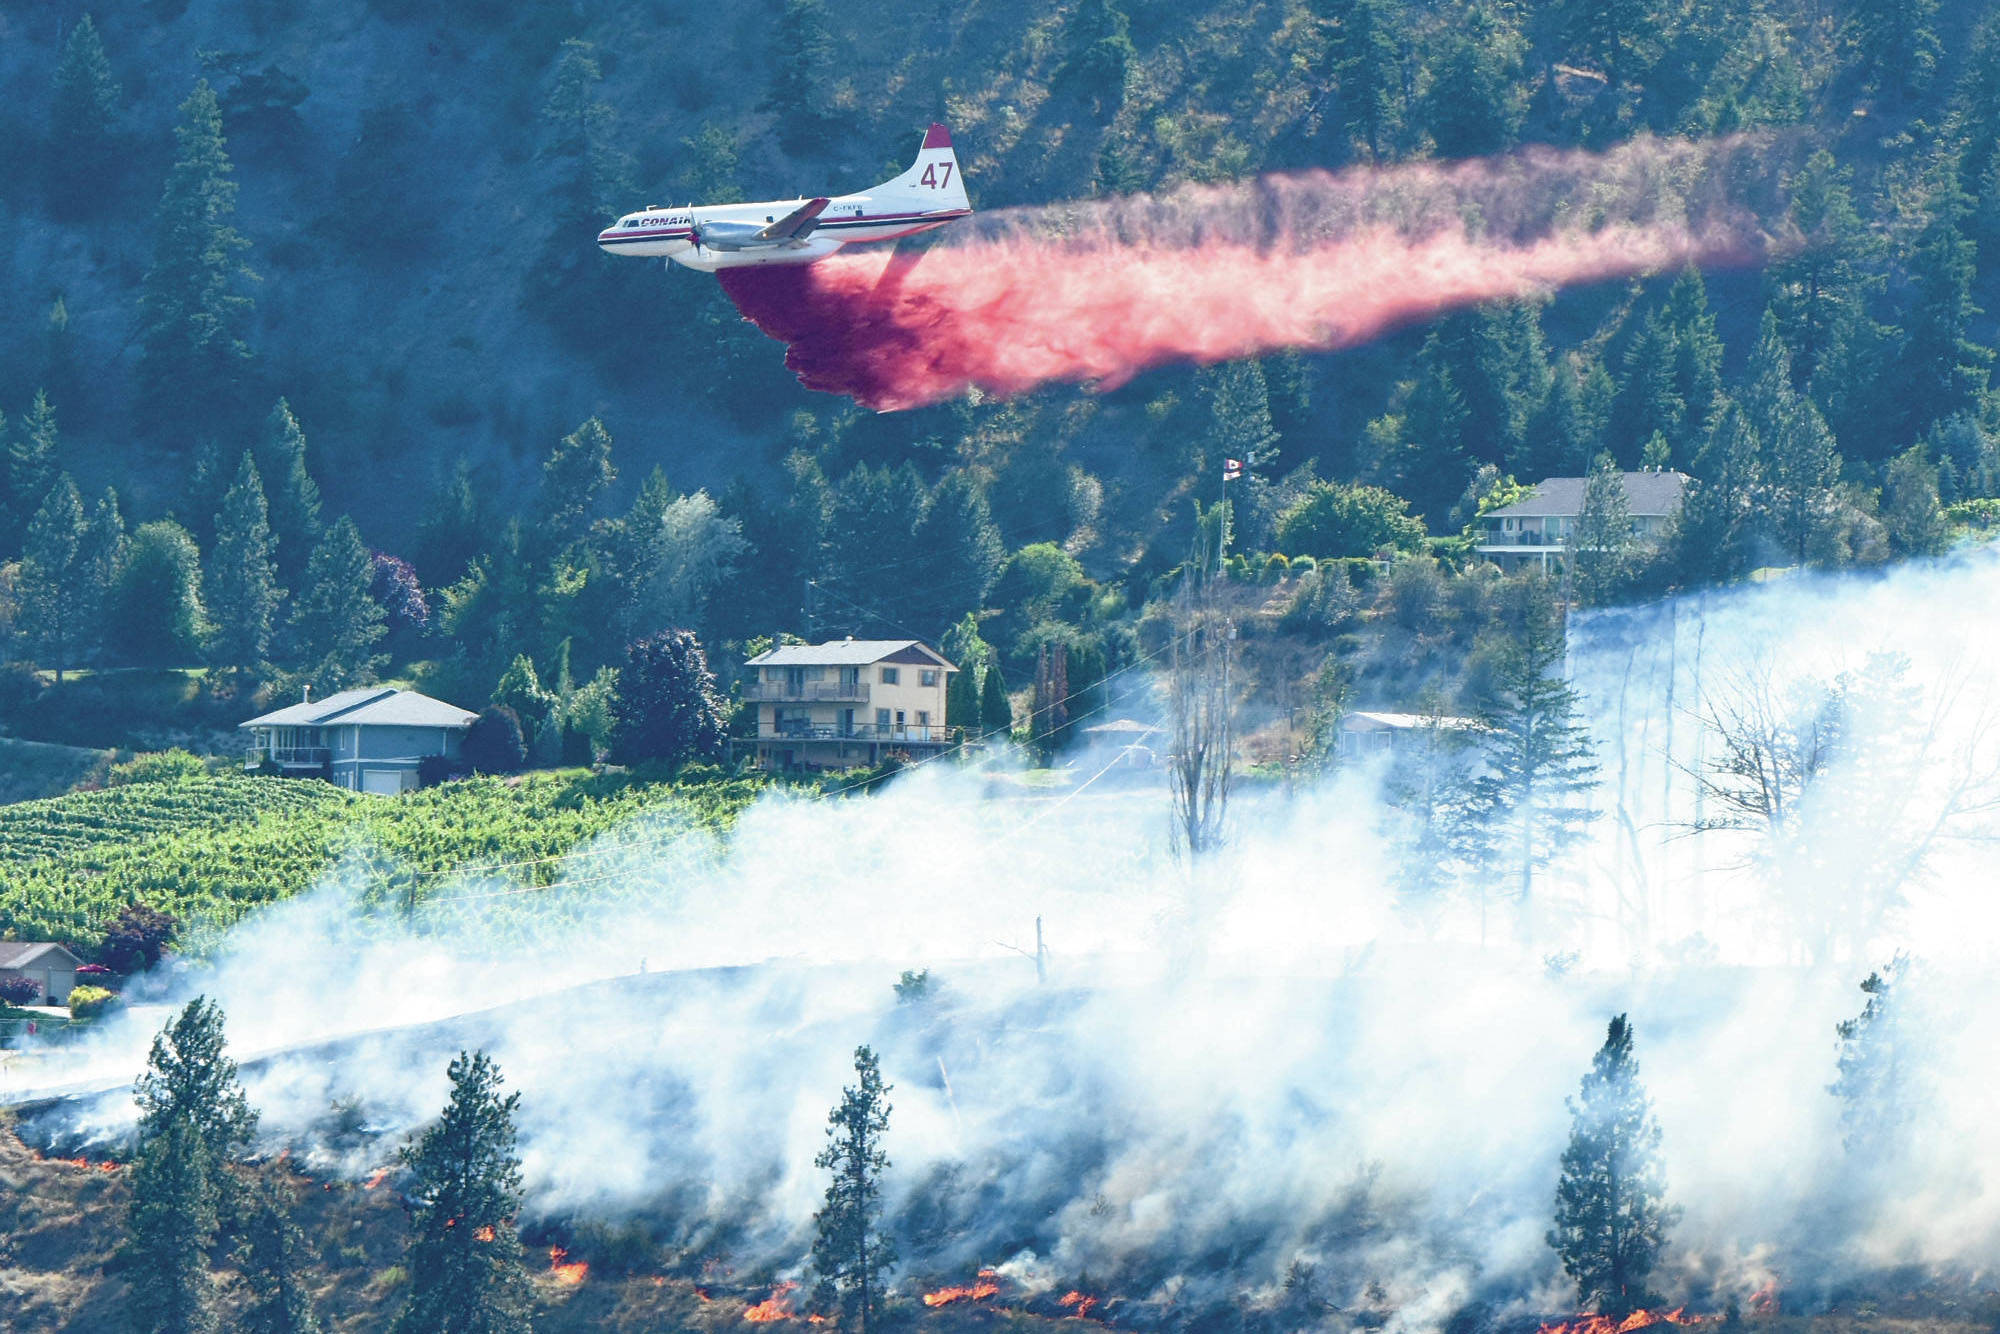 BC Wildfire Service air tankers and pilots are now stationed at the Penticton Airport, ready at a moment's notice to fight wildfires. (Western News file photo)